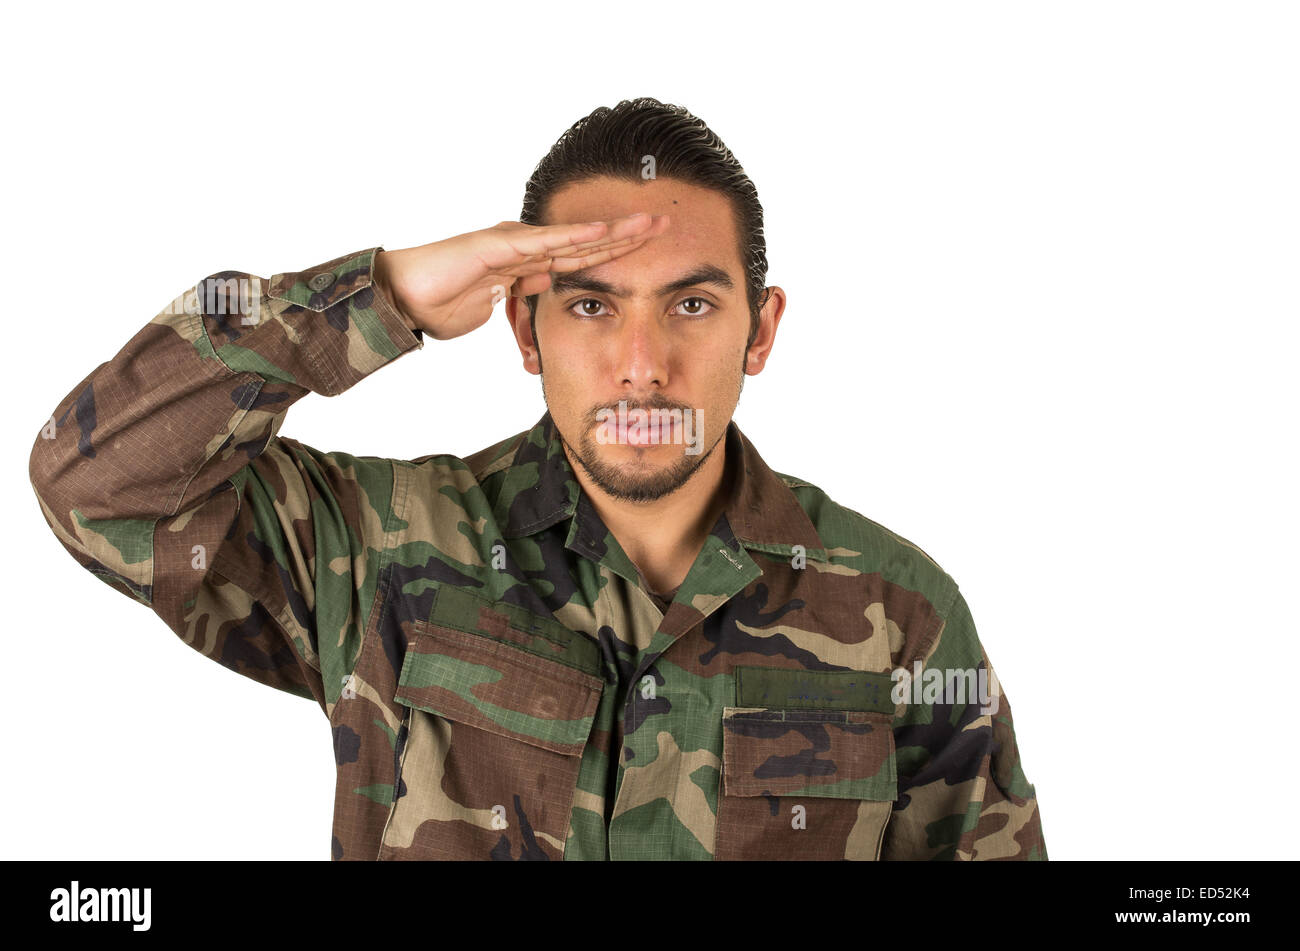 hispanic military man wearing uniform Stock Photo